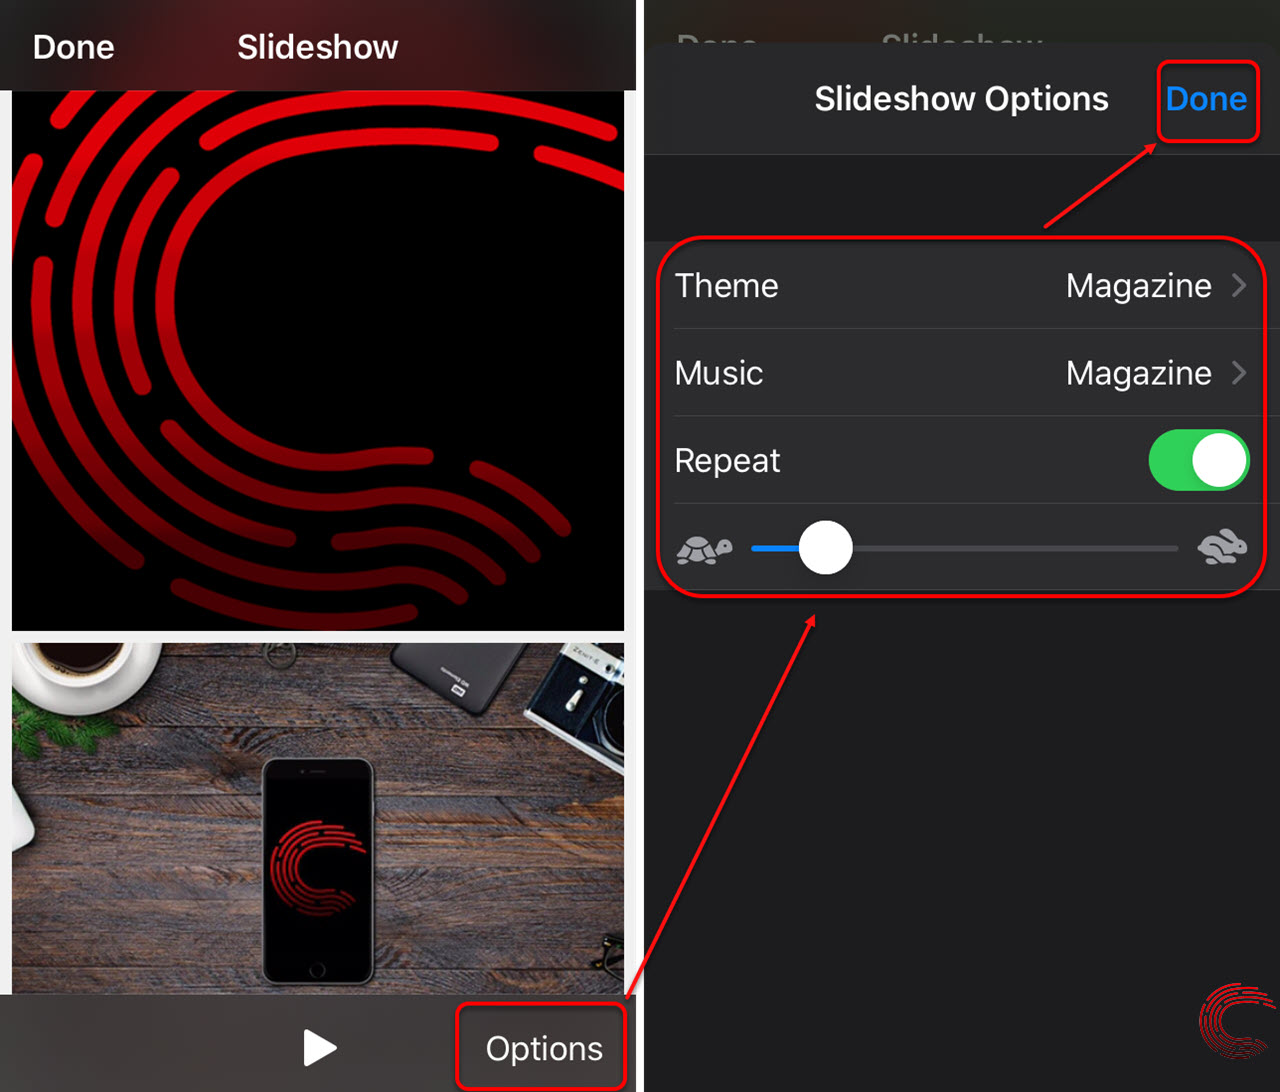 How to make a slideshow on your iPhone and iPad?